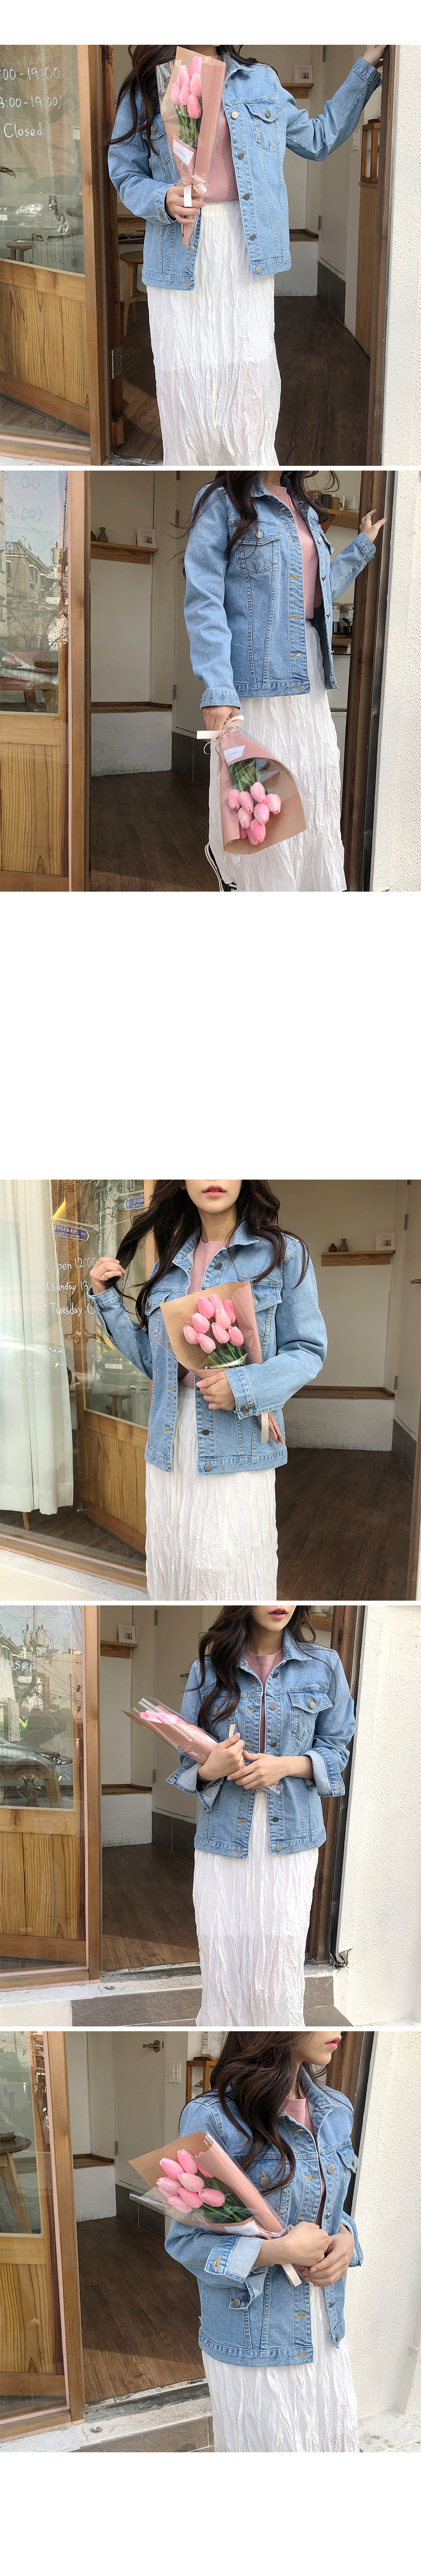 Bagel denim jacket